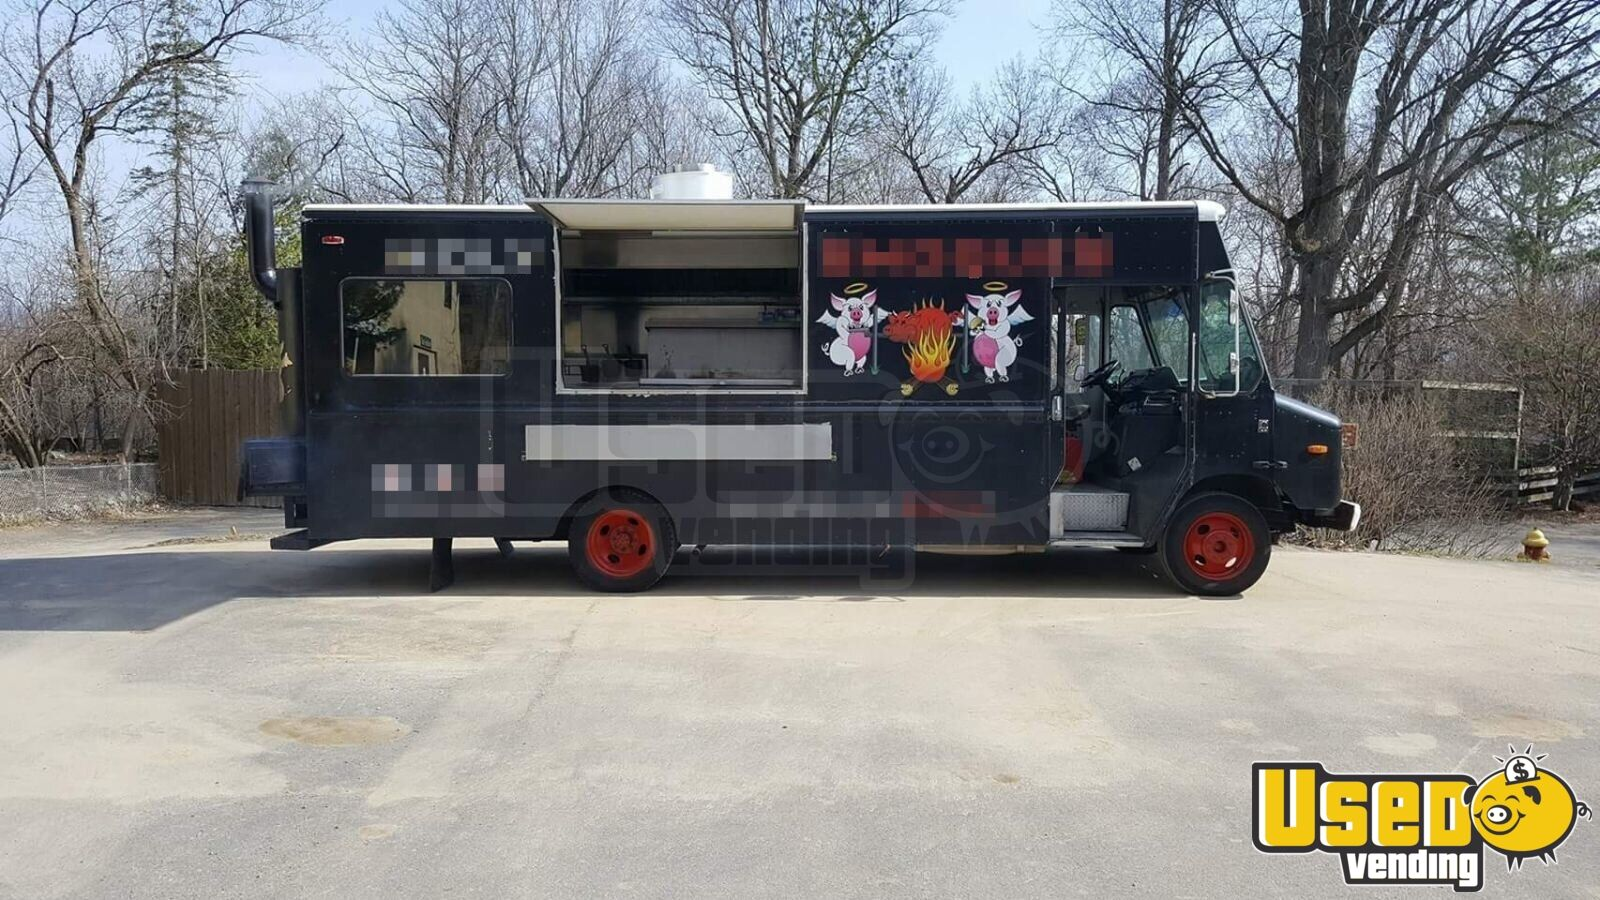 2005 Step Van Barbecue Food Truck Barbecue Food Truck Concession Window New York Diesel Engine for Sale - 2